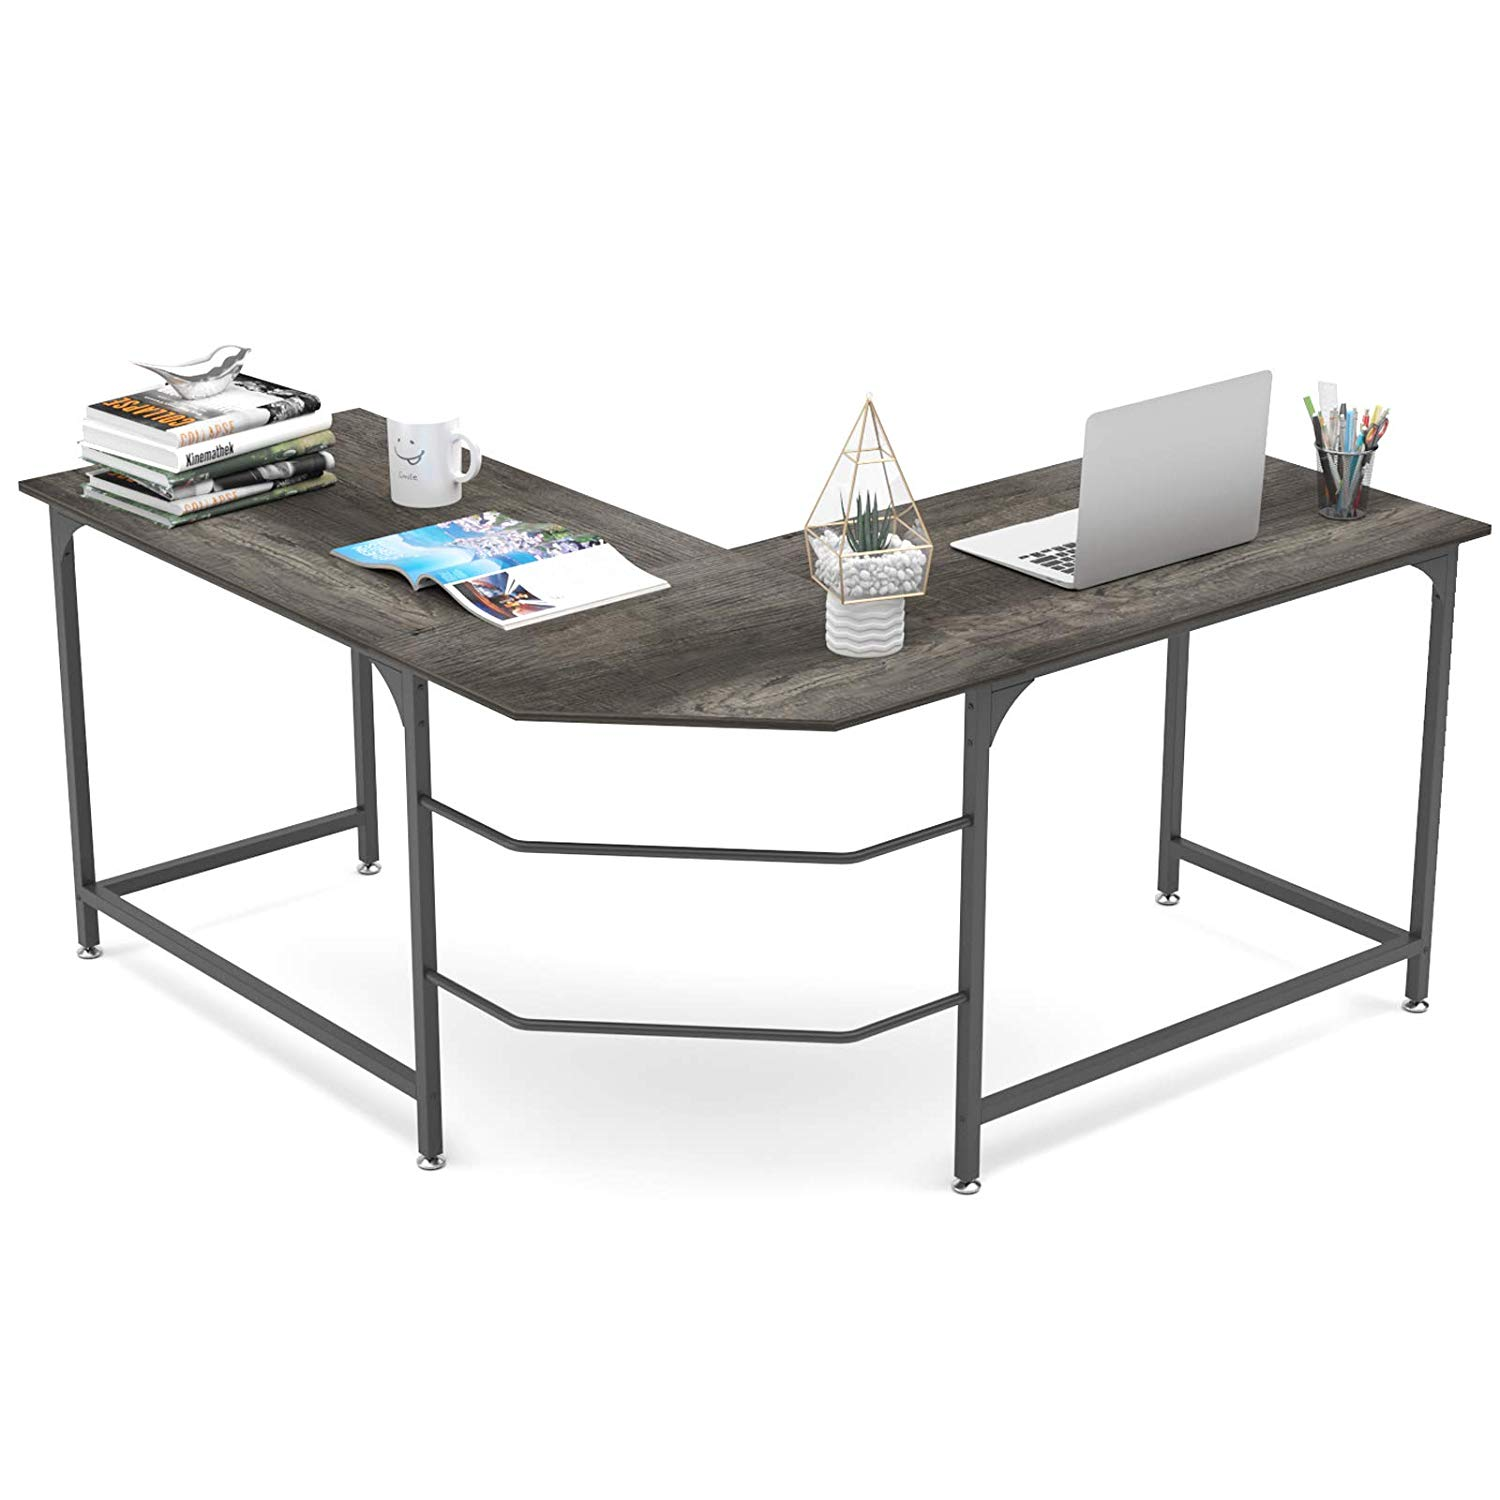 Elephance 59 inches L-shaped Desk